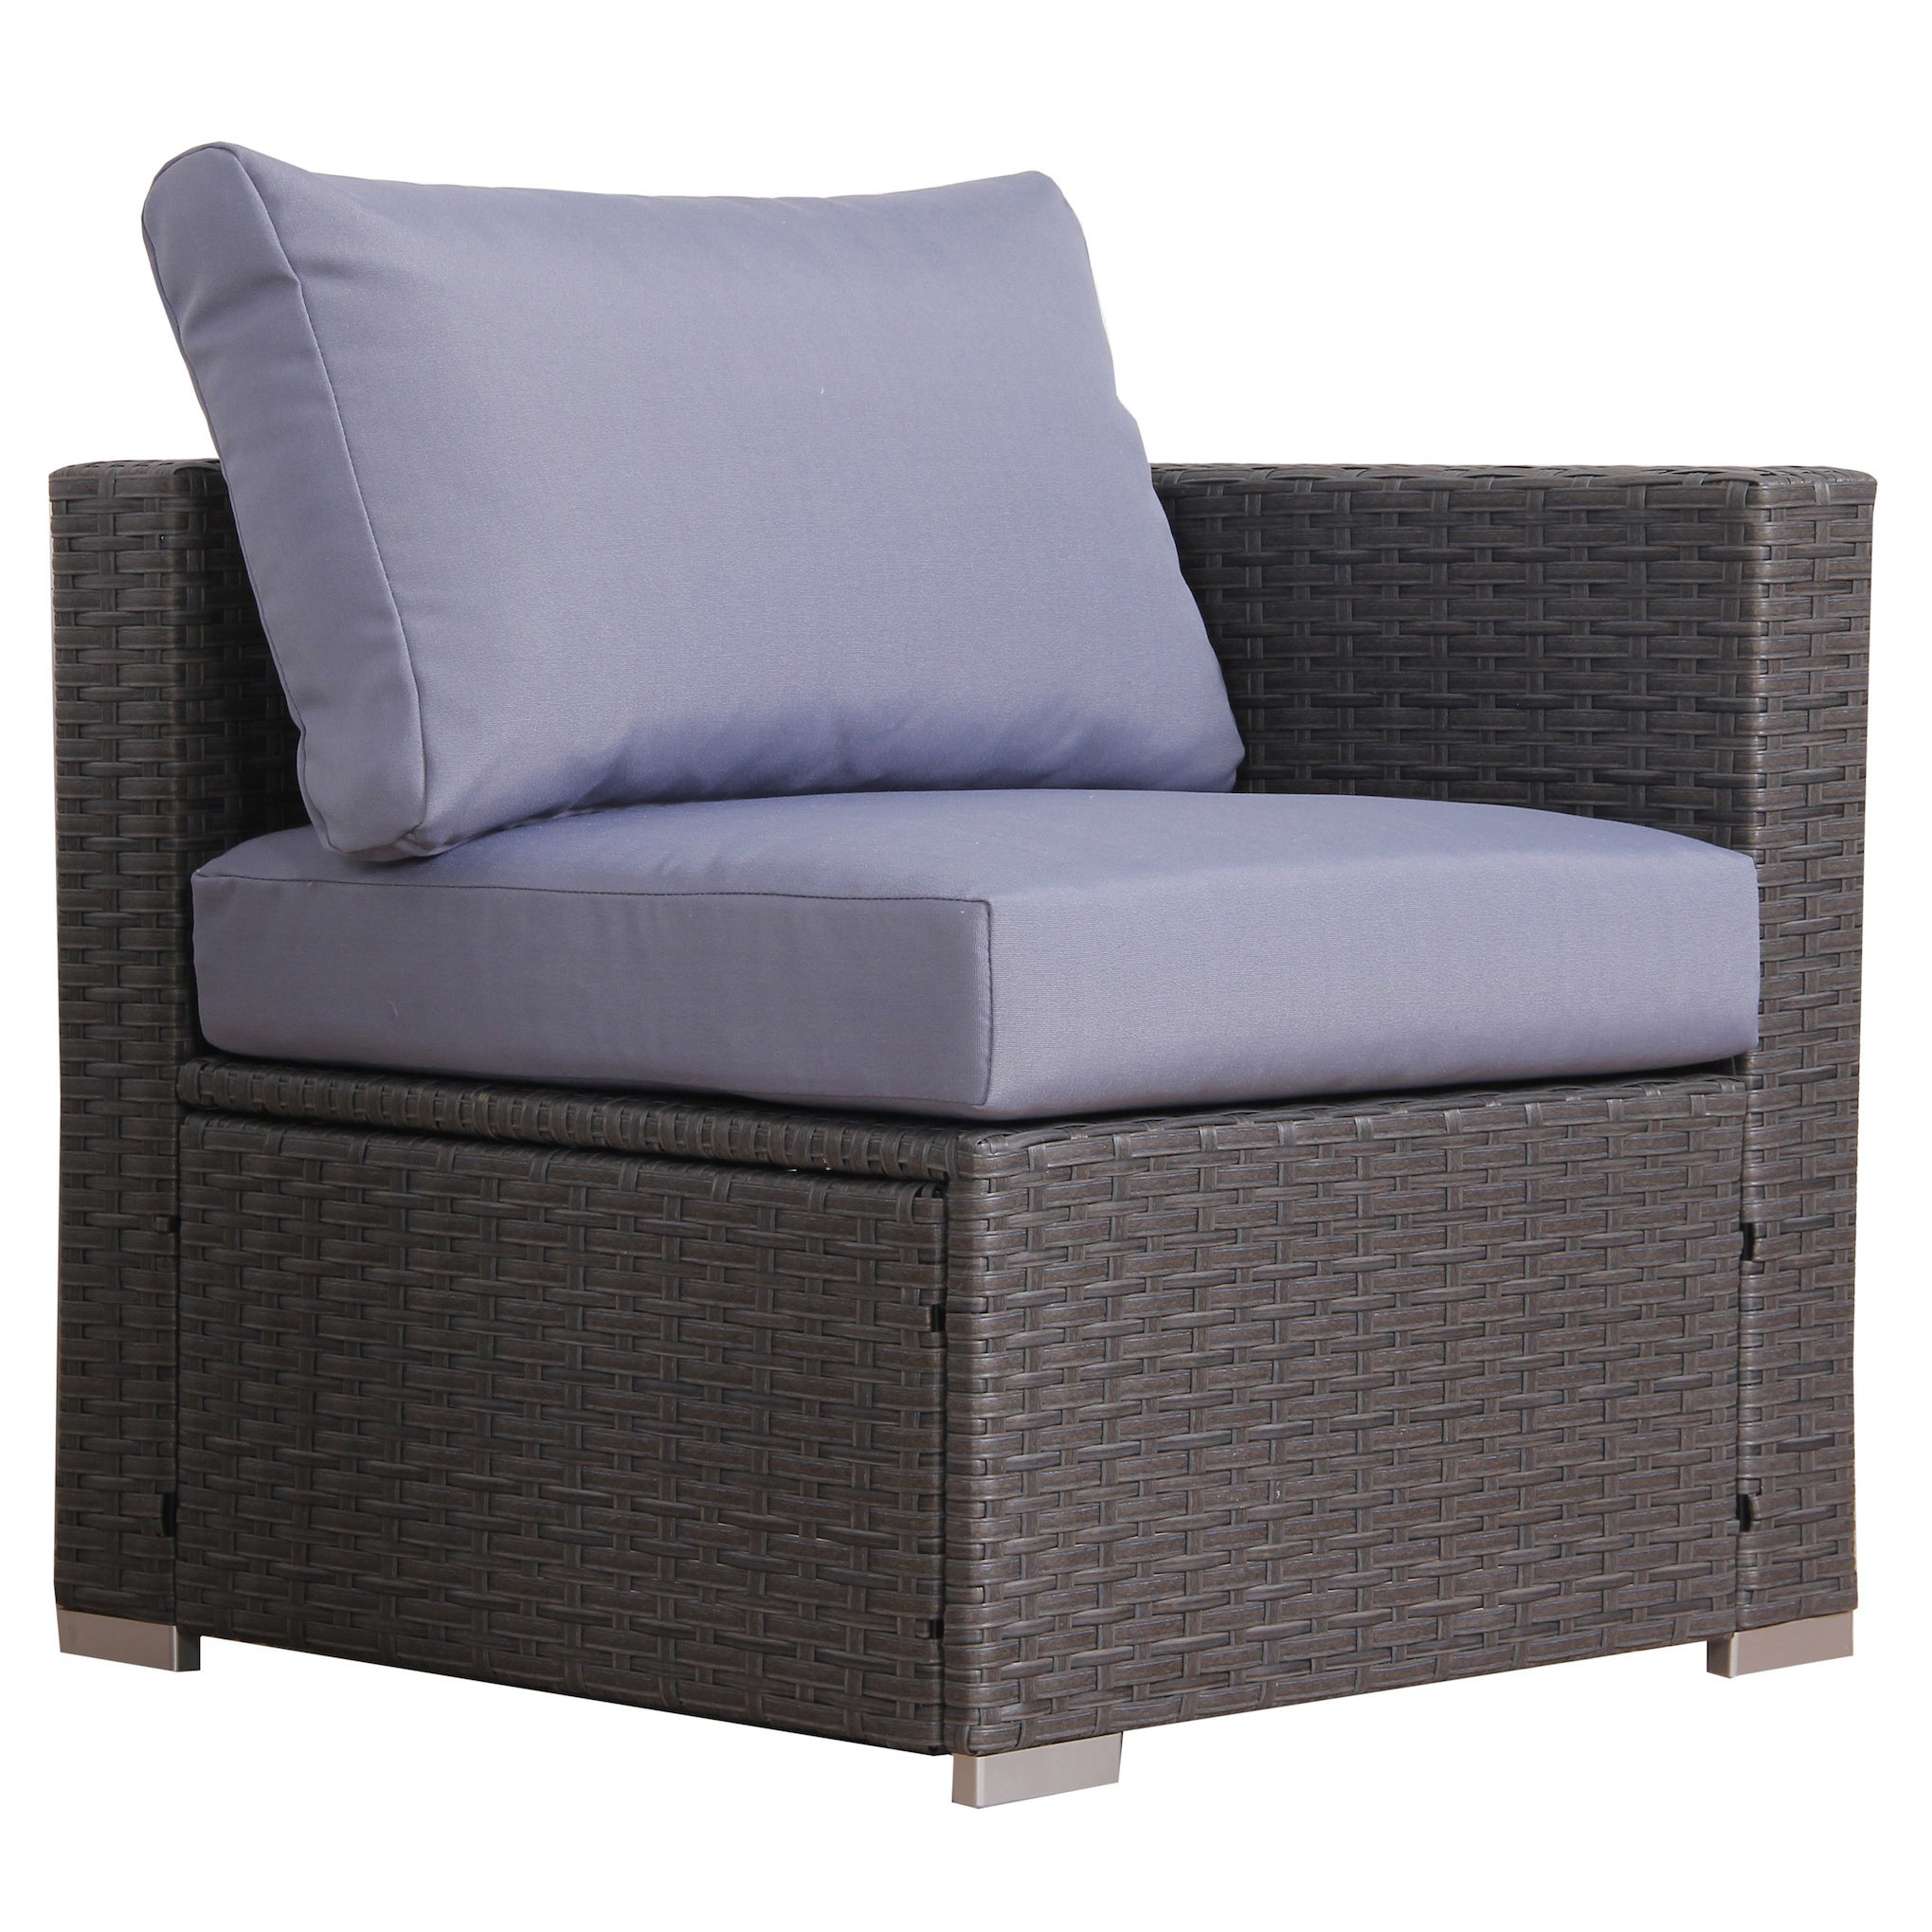 choosing furniture outdoor blog tips patio for color an